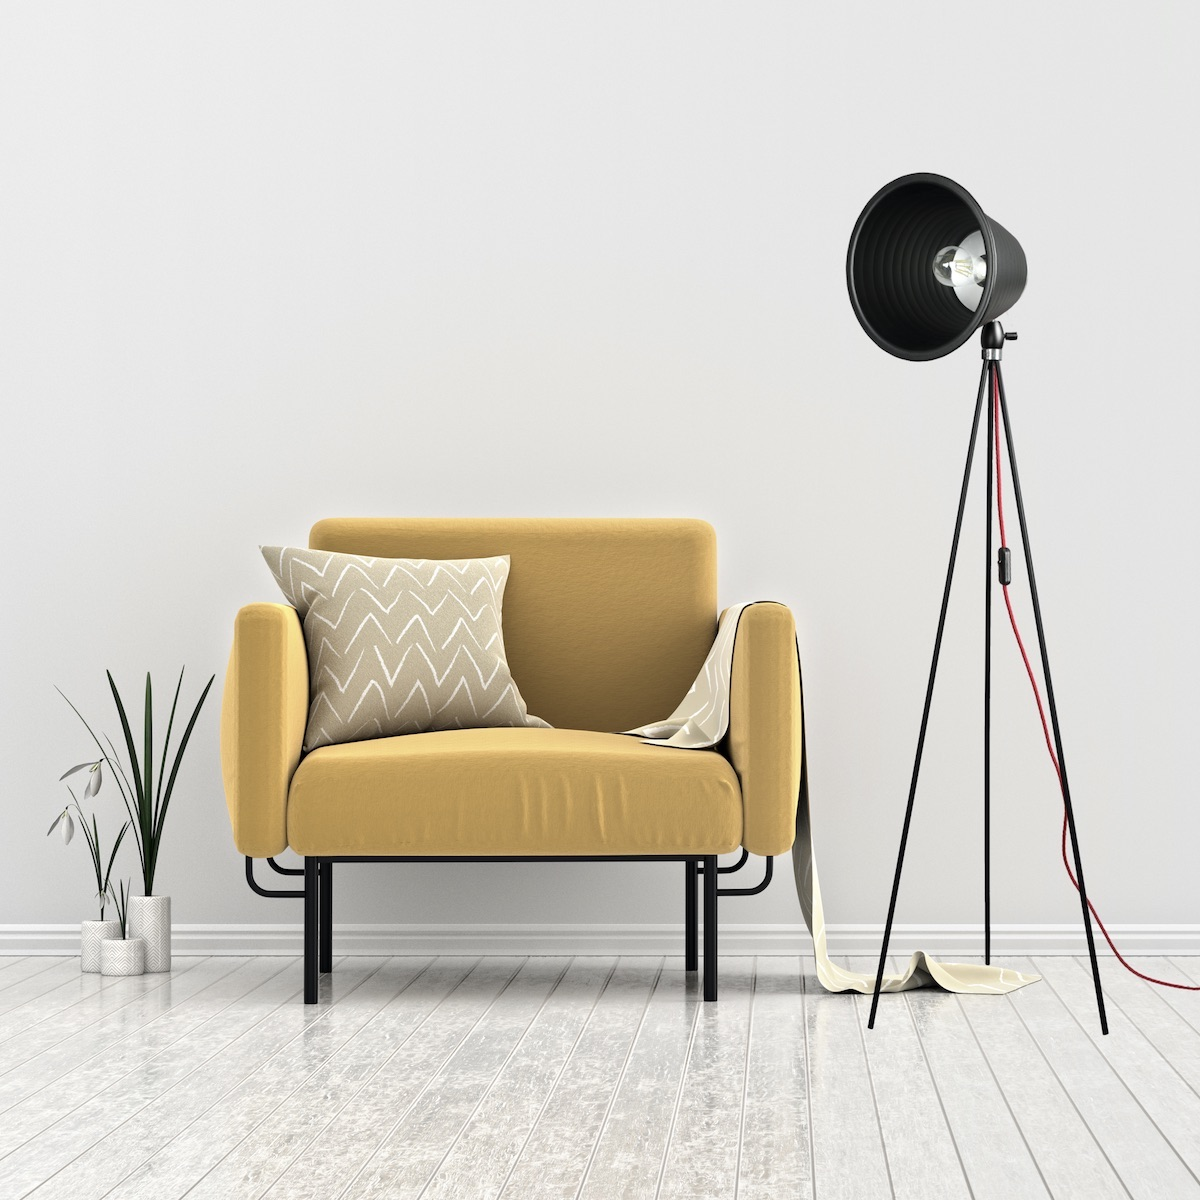 floor-lamp-taboo-black-next-to-the-chair-design